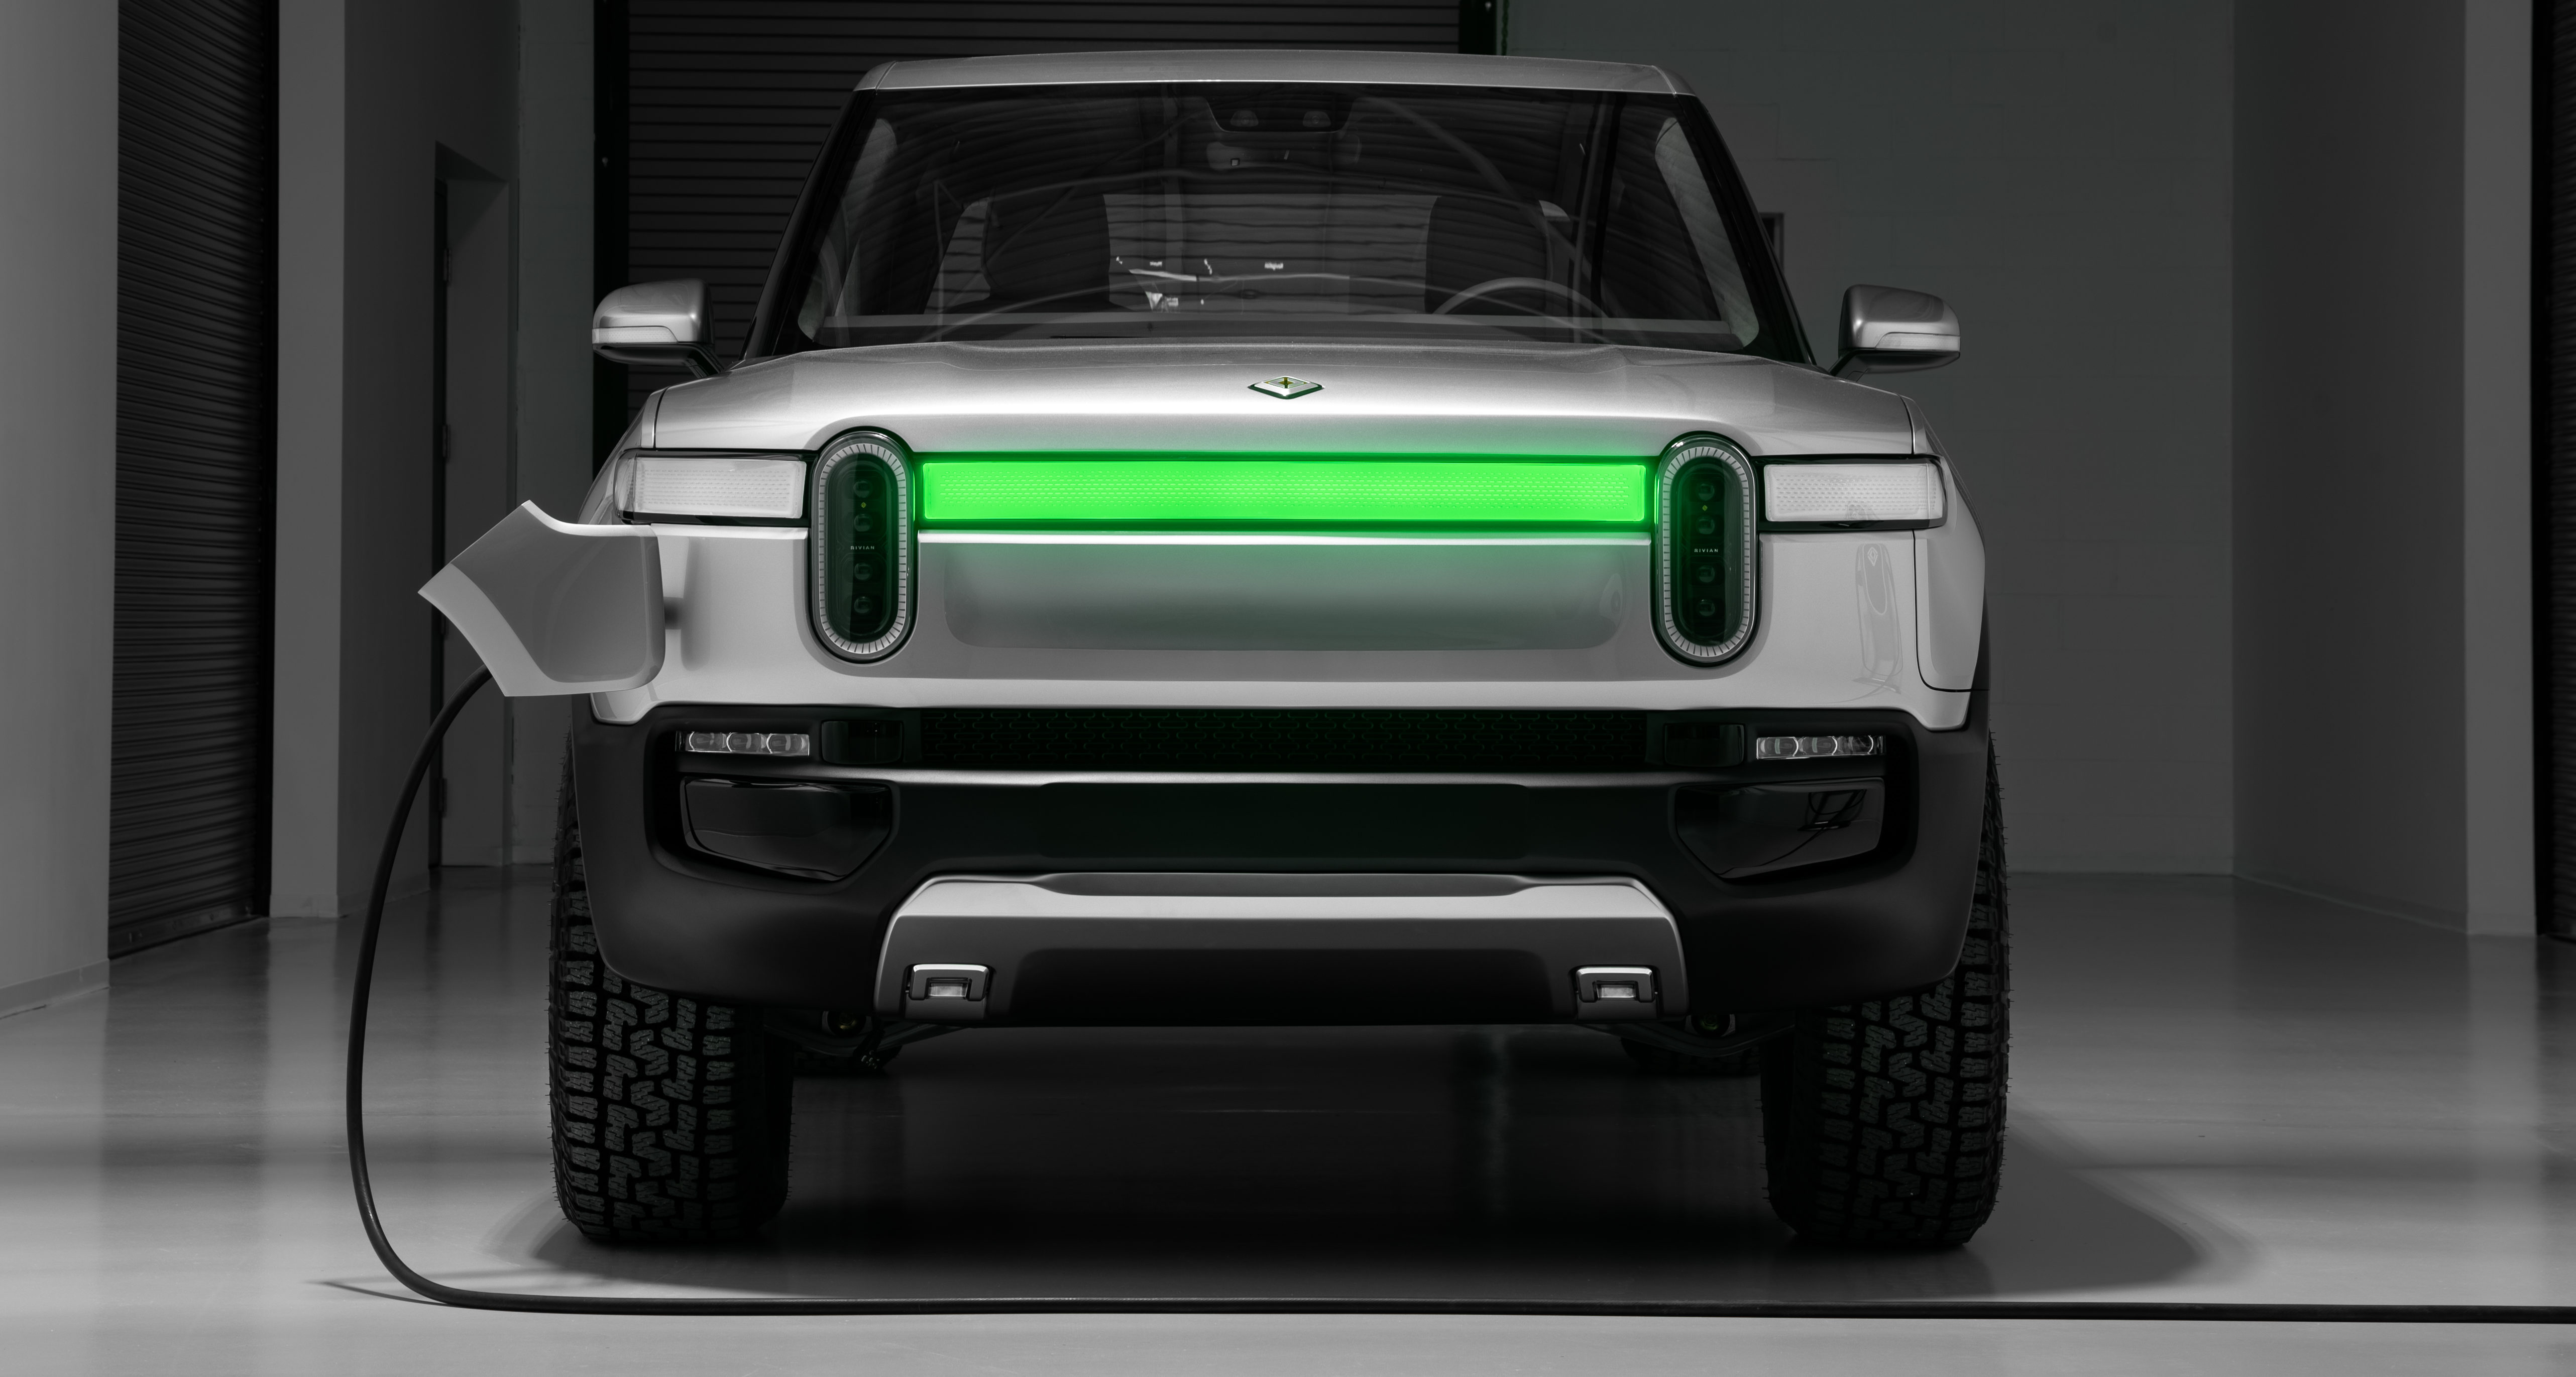 Rivian Announces R1t Pickup Truck 69k Starting Price 400 Mile Range And 11k Lb Towing Capacity